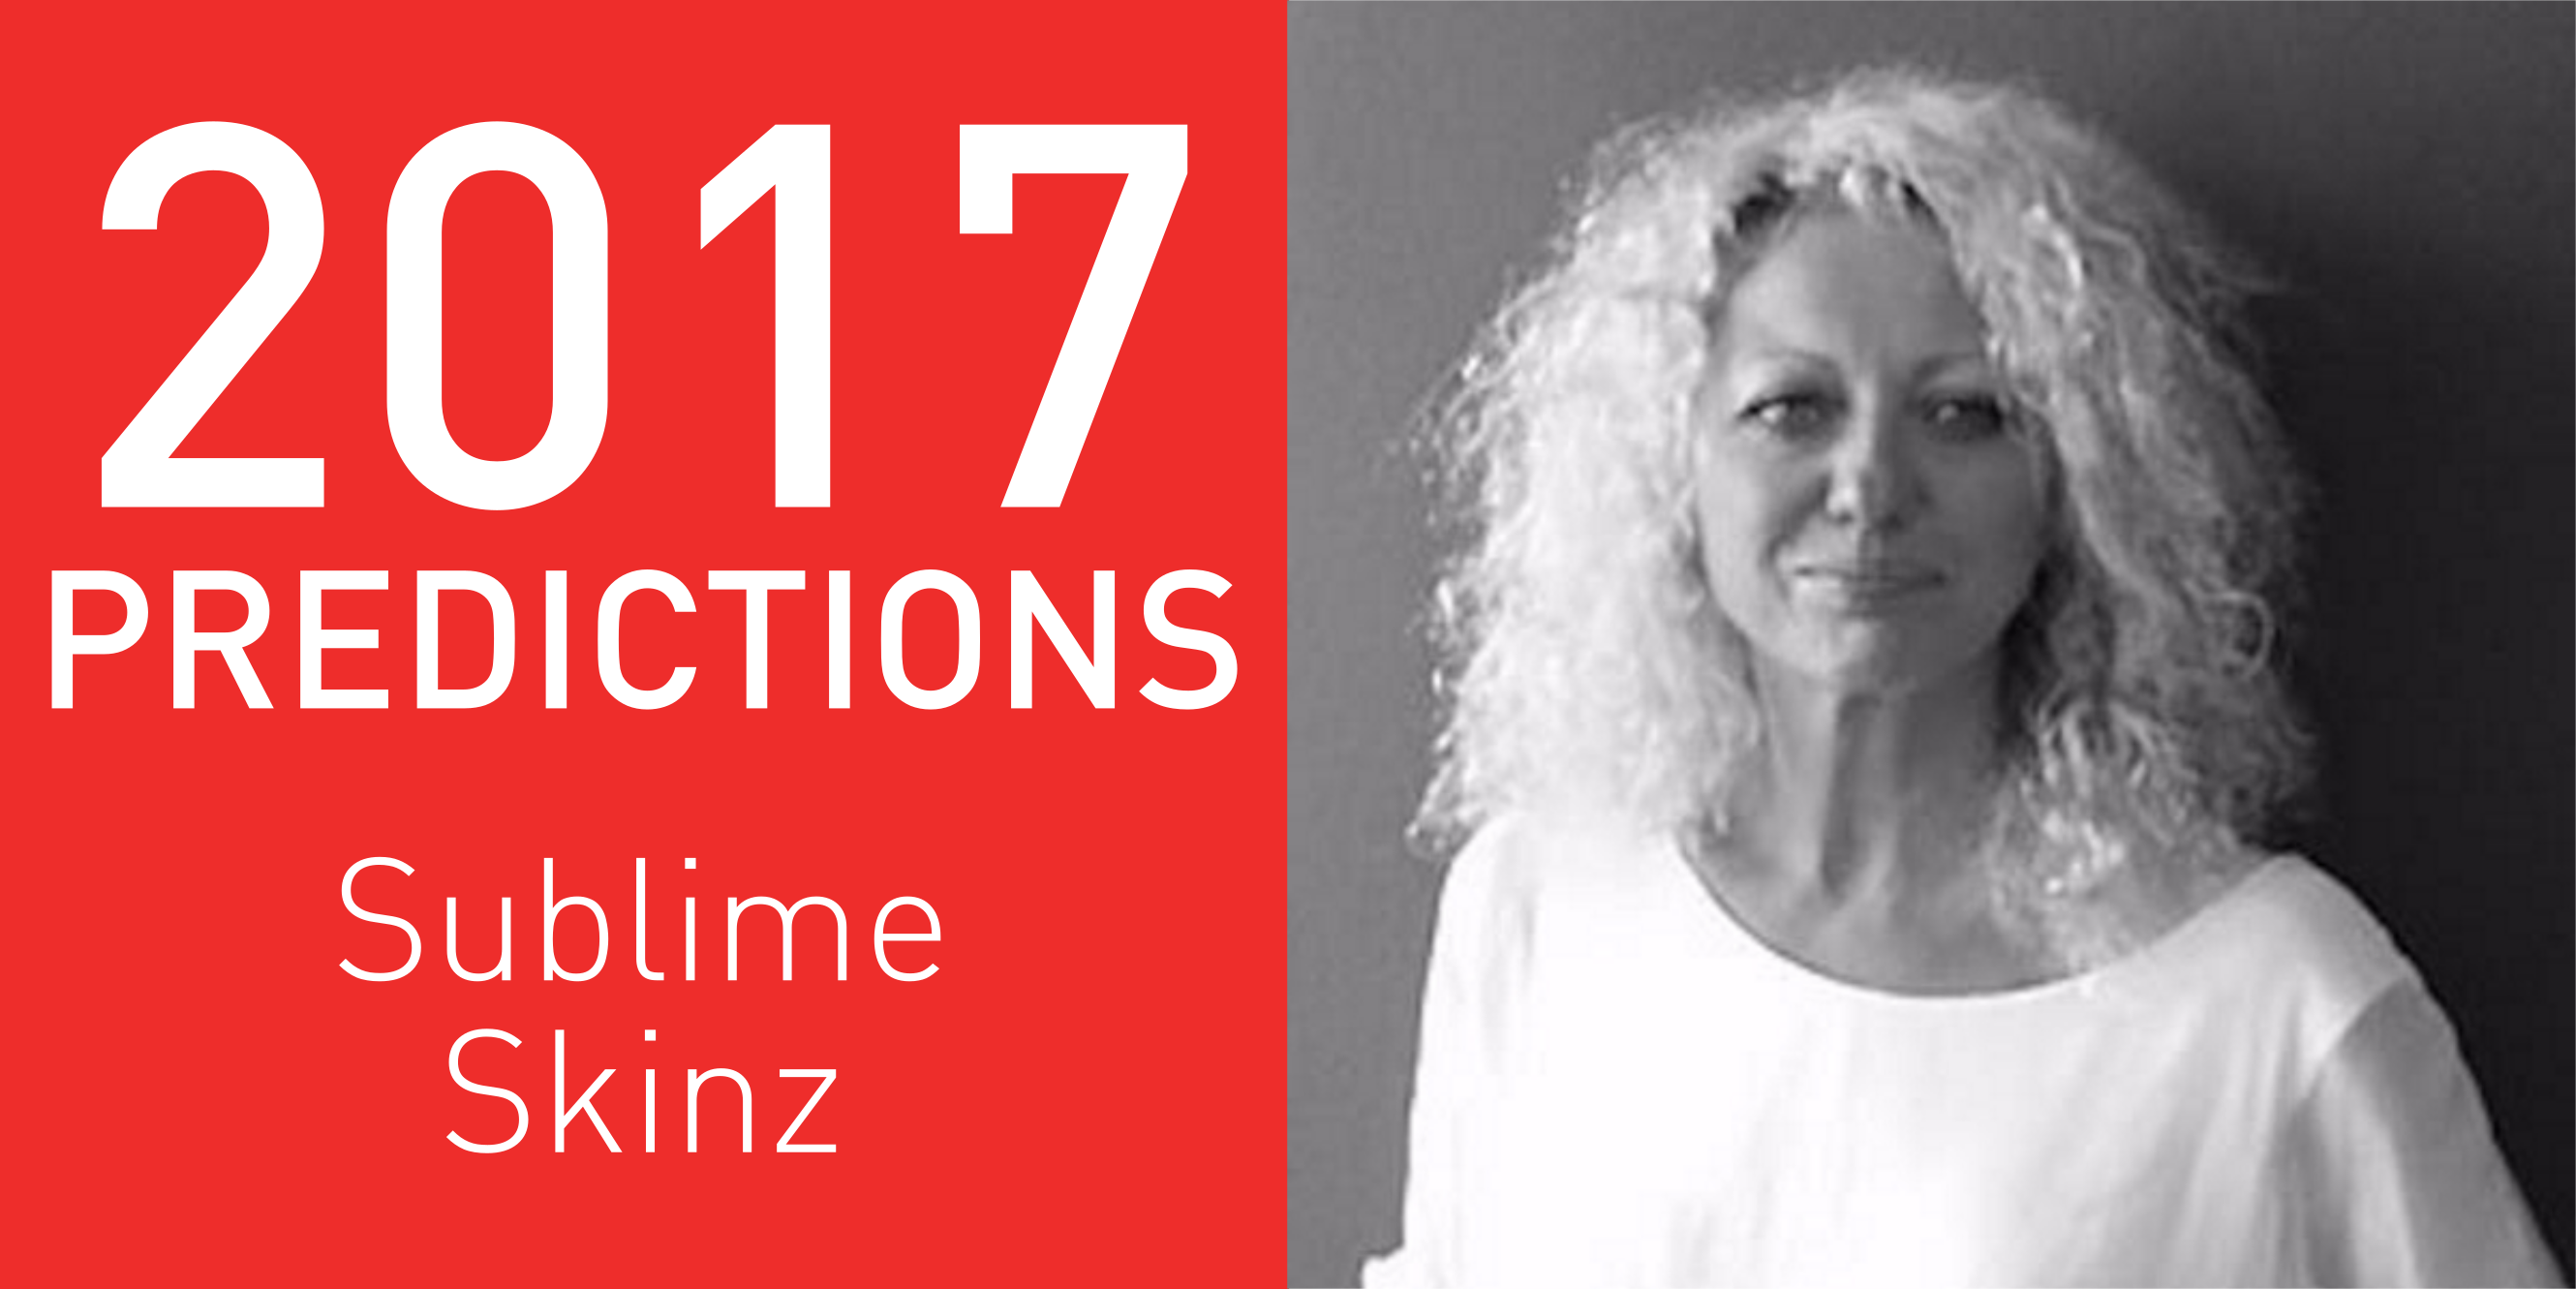 2017 Predictions: Sublime Skinz